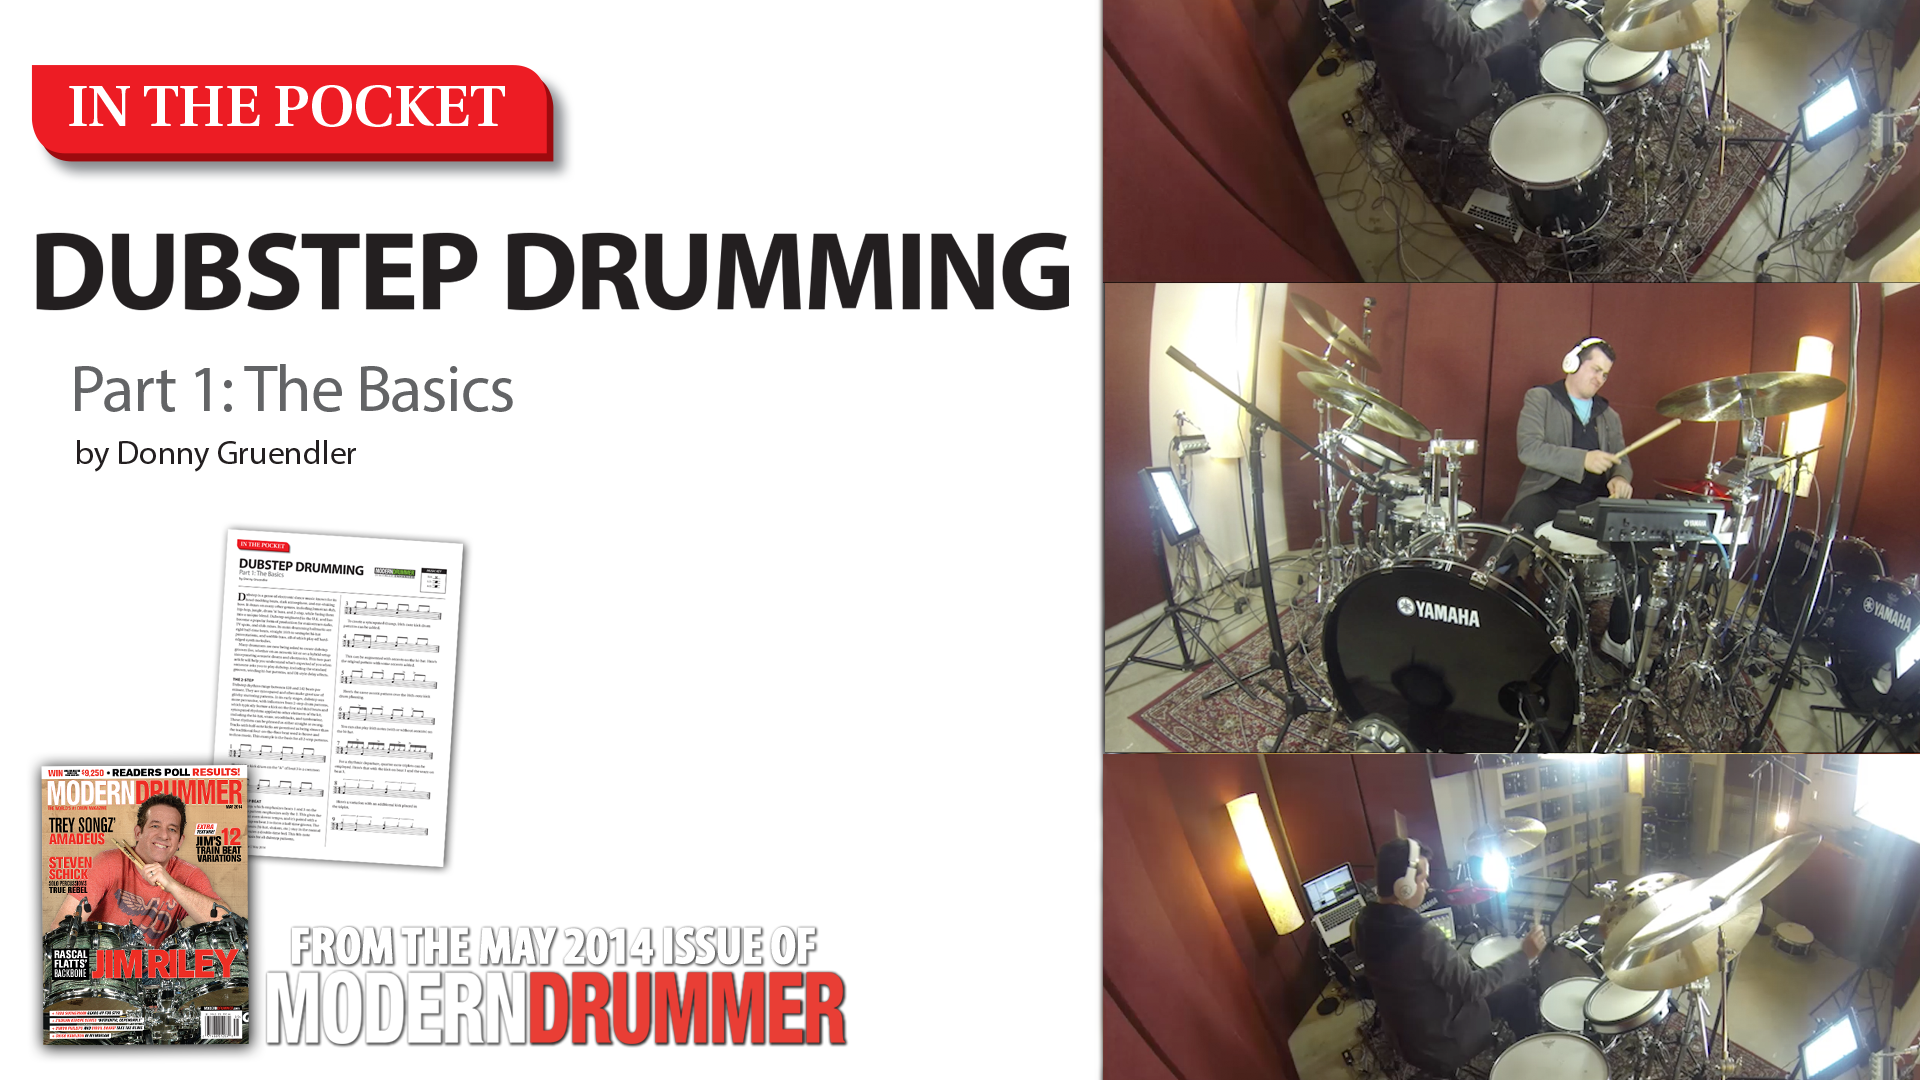 VIDEO! In the Pocket: Dubstep Drumming, Part 1: The Basics (From the May 2014 Issue)